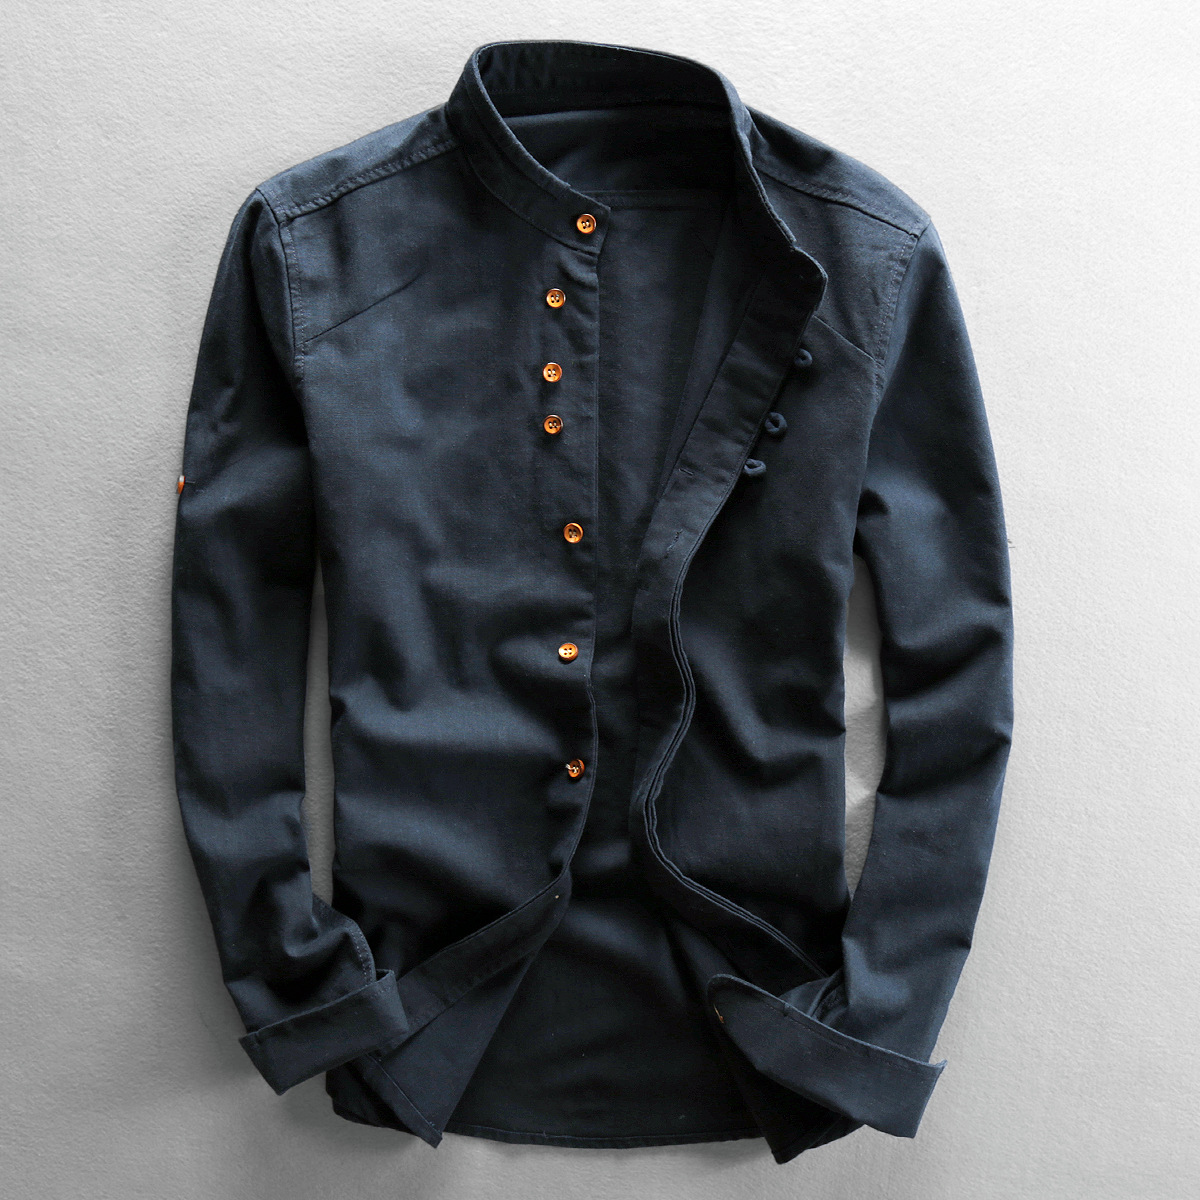 2020 Long Sleeve Men's Casual Linen Shirt Chinese Style Stand Collar Button Up Slim Cotton Linen Retro Shirts